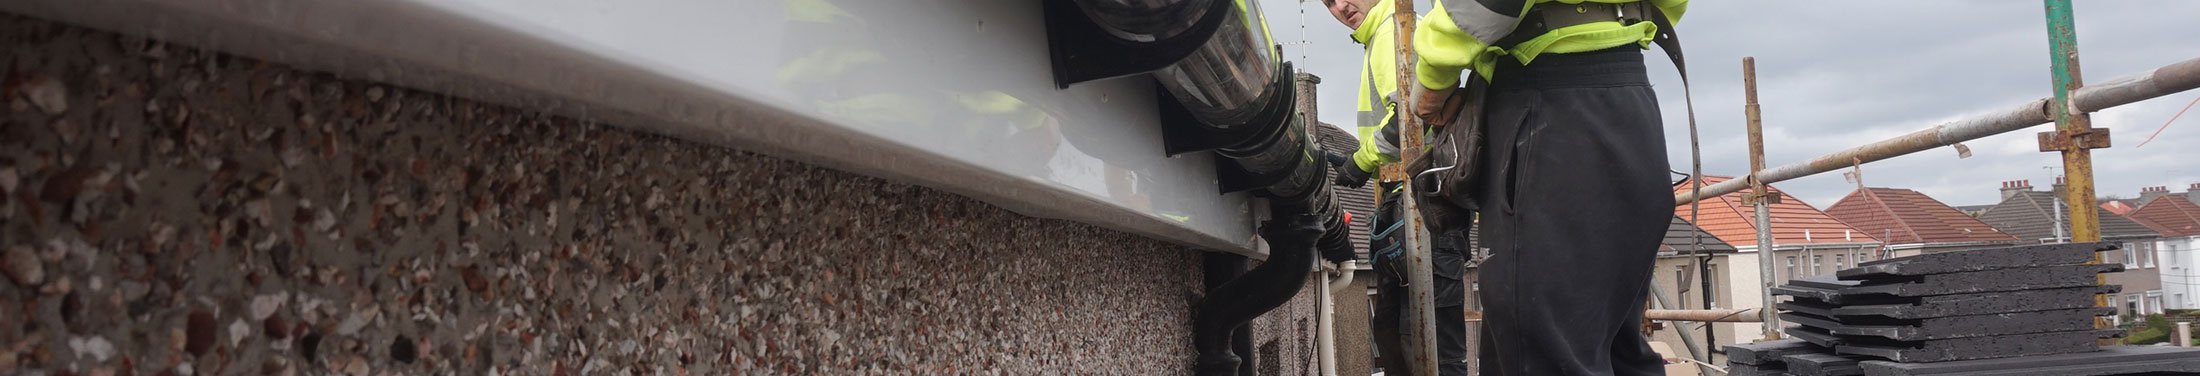 Fort Roofing Upvc Gutter Repair Replacement